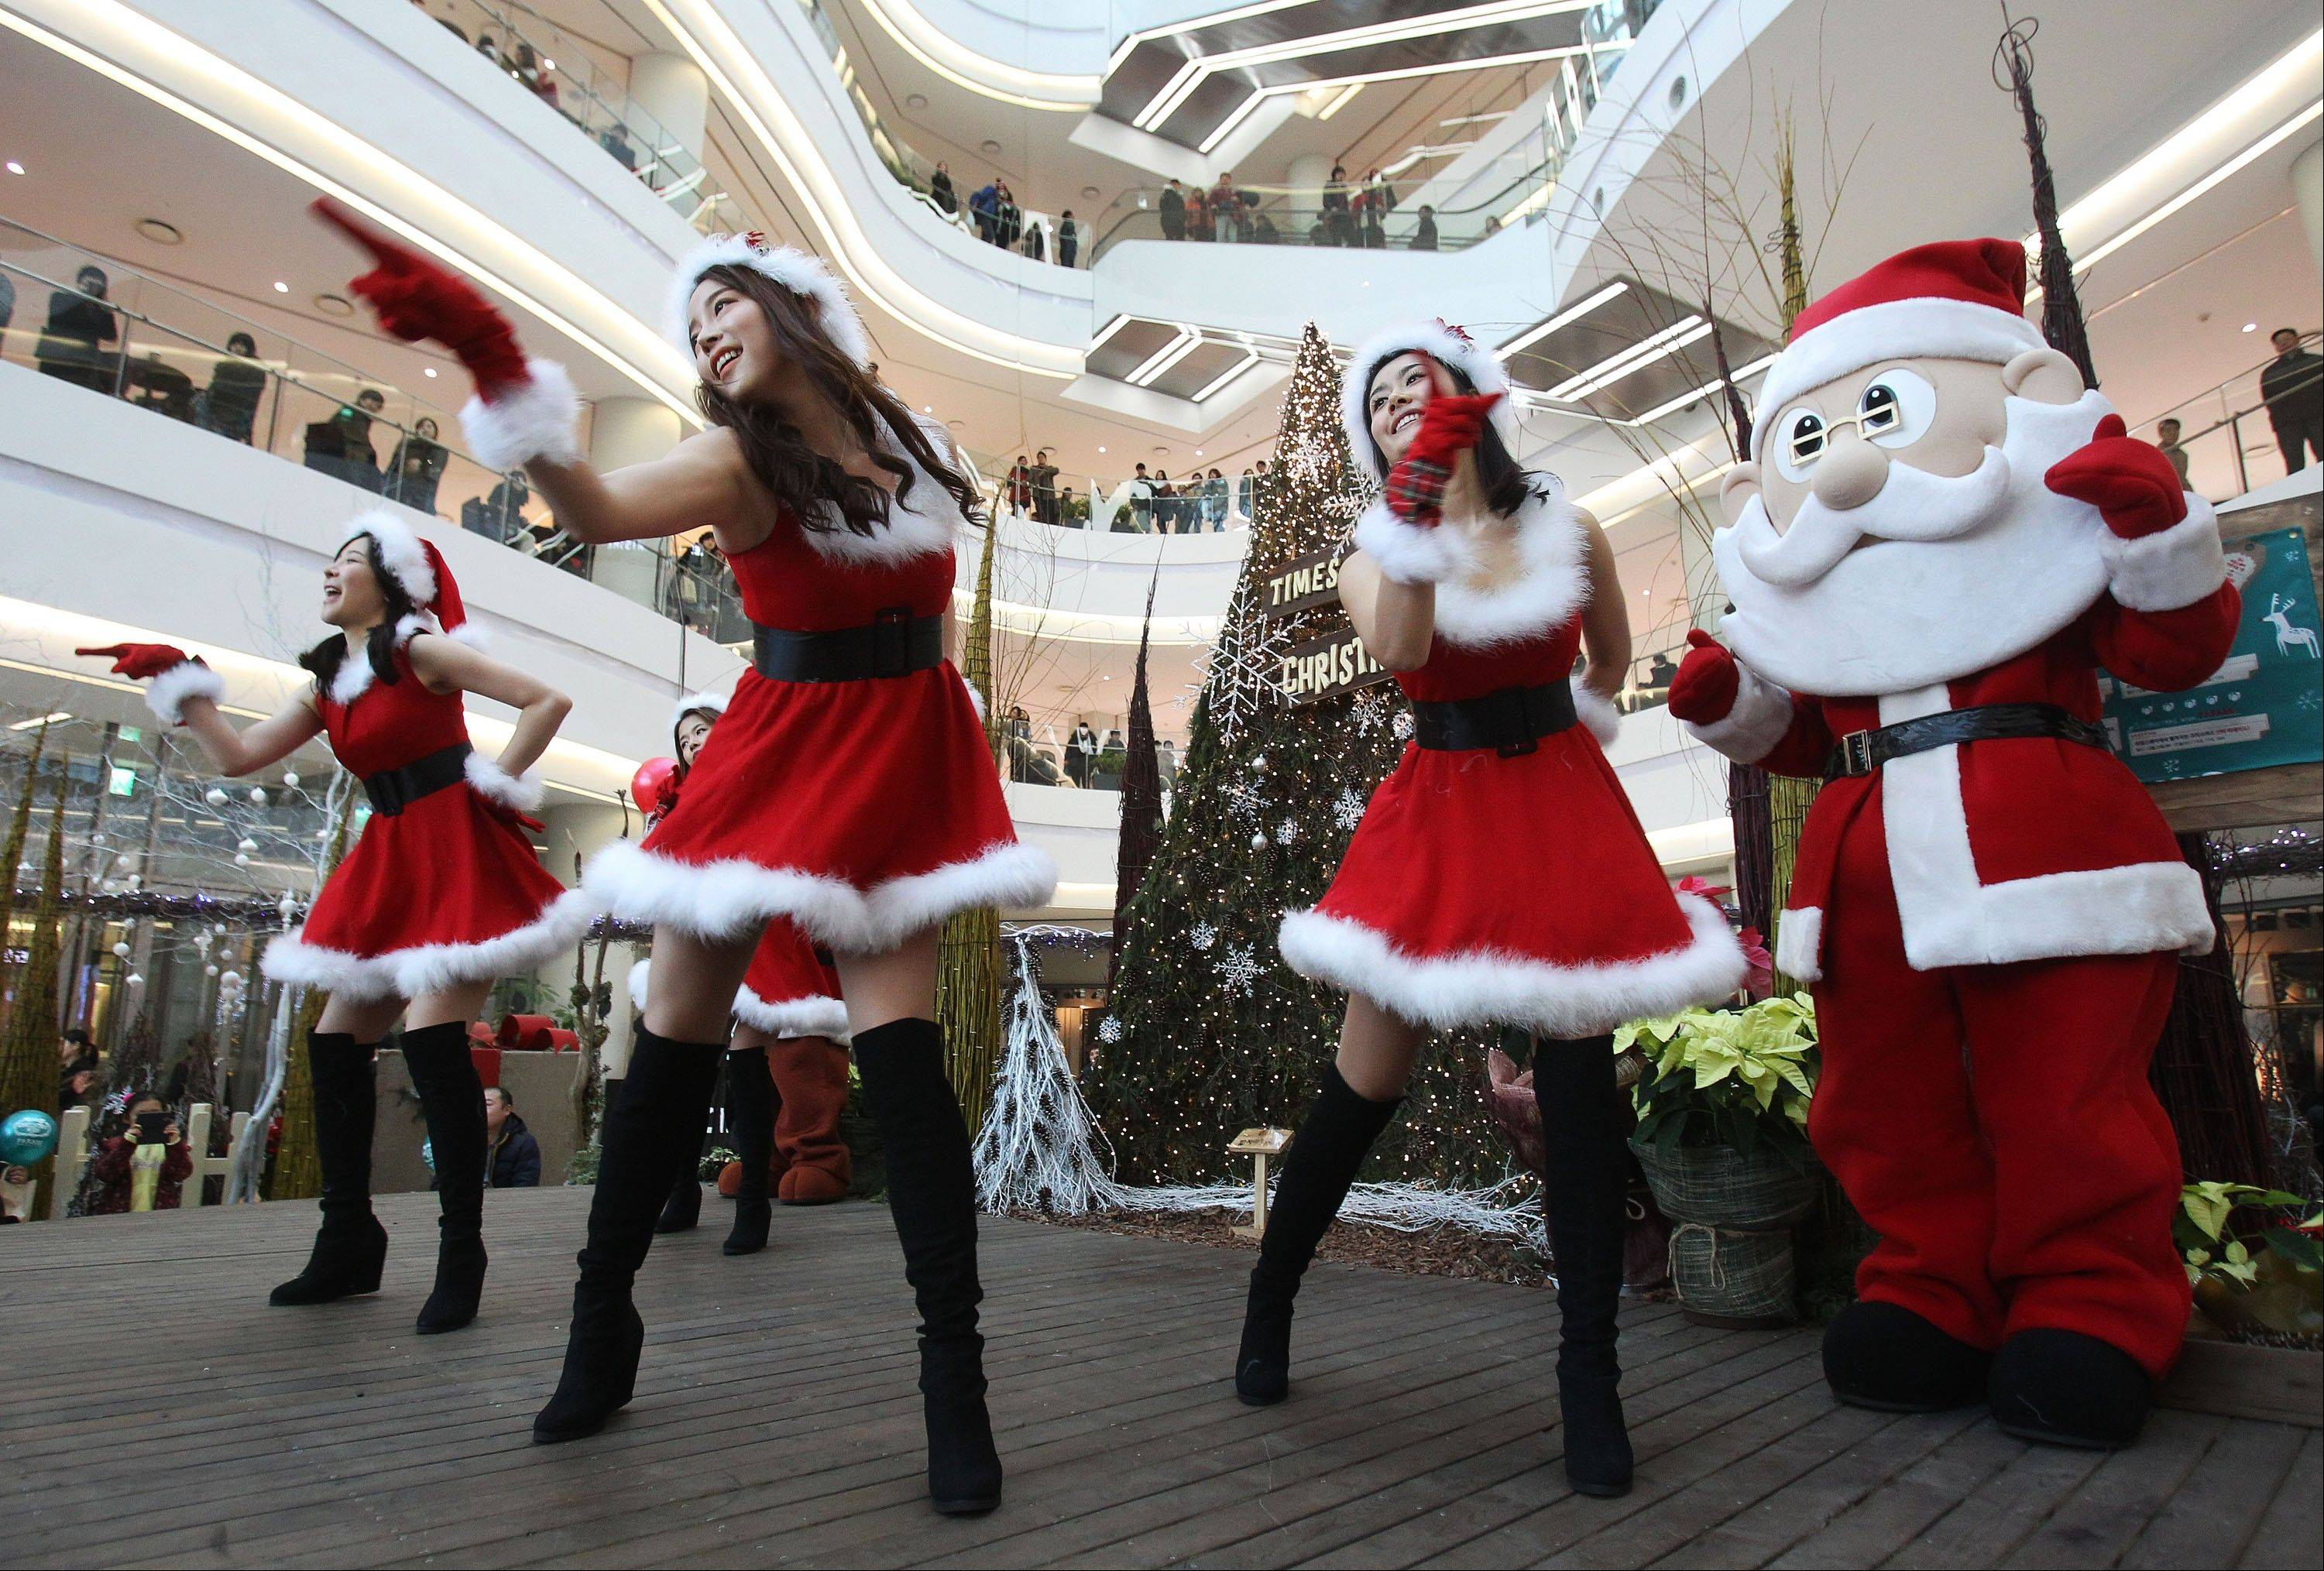 Employees dressed as Santa Claus perform as part of a shopping mall's Christmas celebrations in Seoul, South Korea, Tuesday, Dec. 24, 2013. A lot of South Korean companies take advantage of the Christmas to promote their business amid weak sales and economic slowdown.